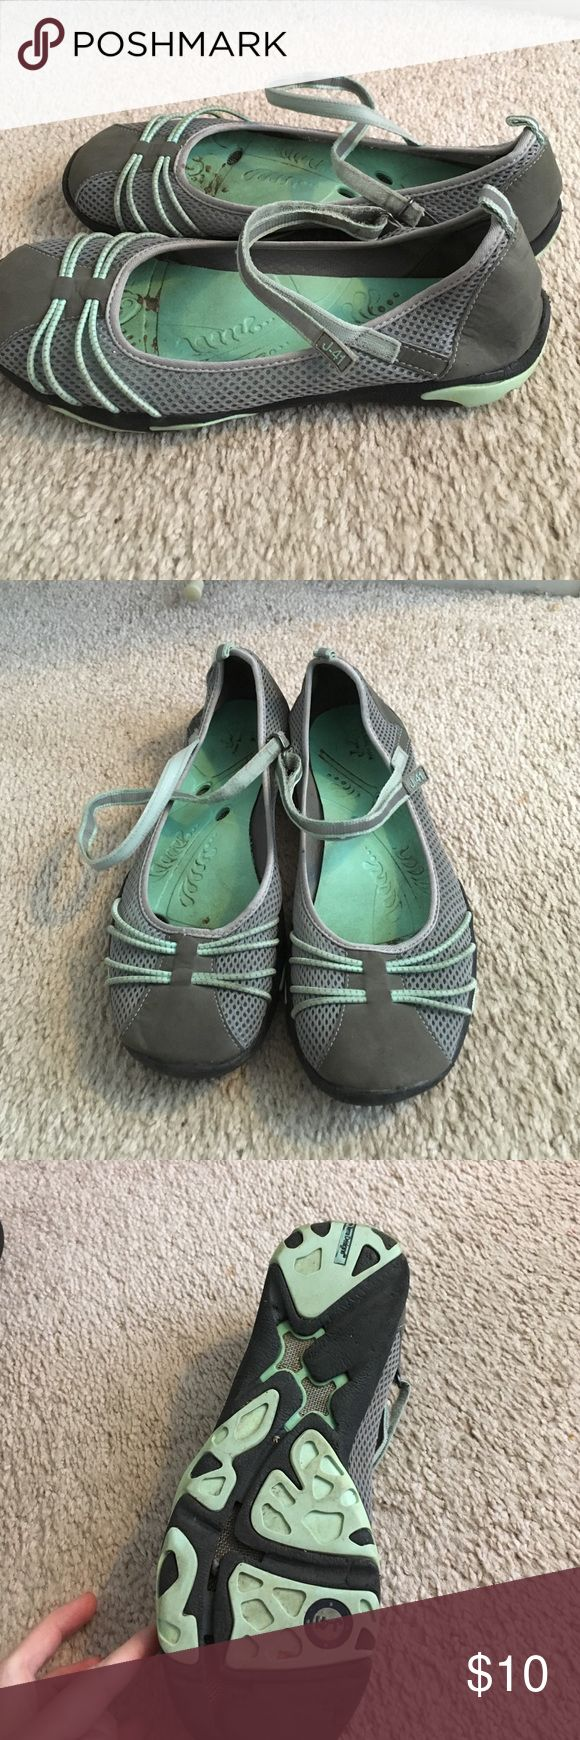 Great J-41 shoes! J-41 Mary Jane slip on shoes.  Very comfortable.  Great for summer, water, and more.  In good condition.  Some wear on the soles but other wise great! J-41 Shoes Flats & Loafers